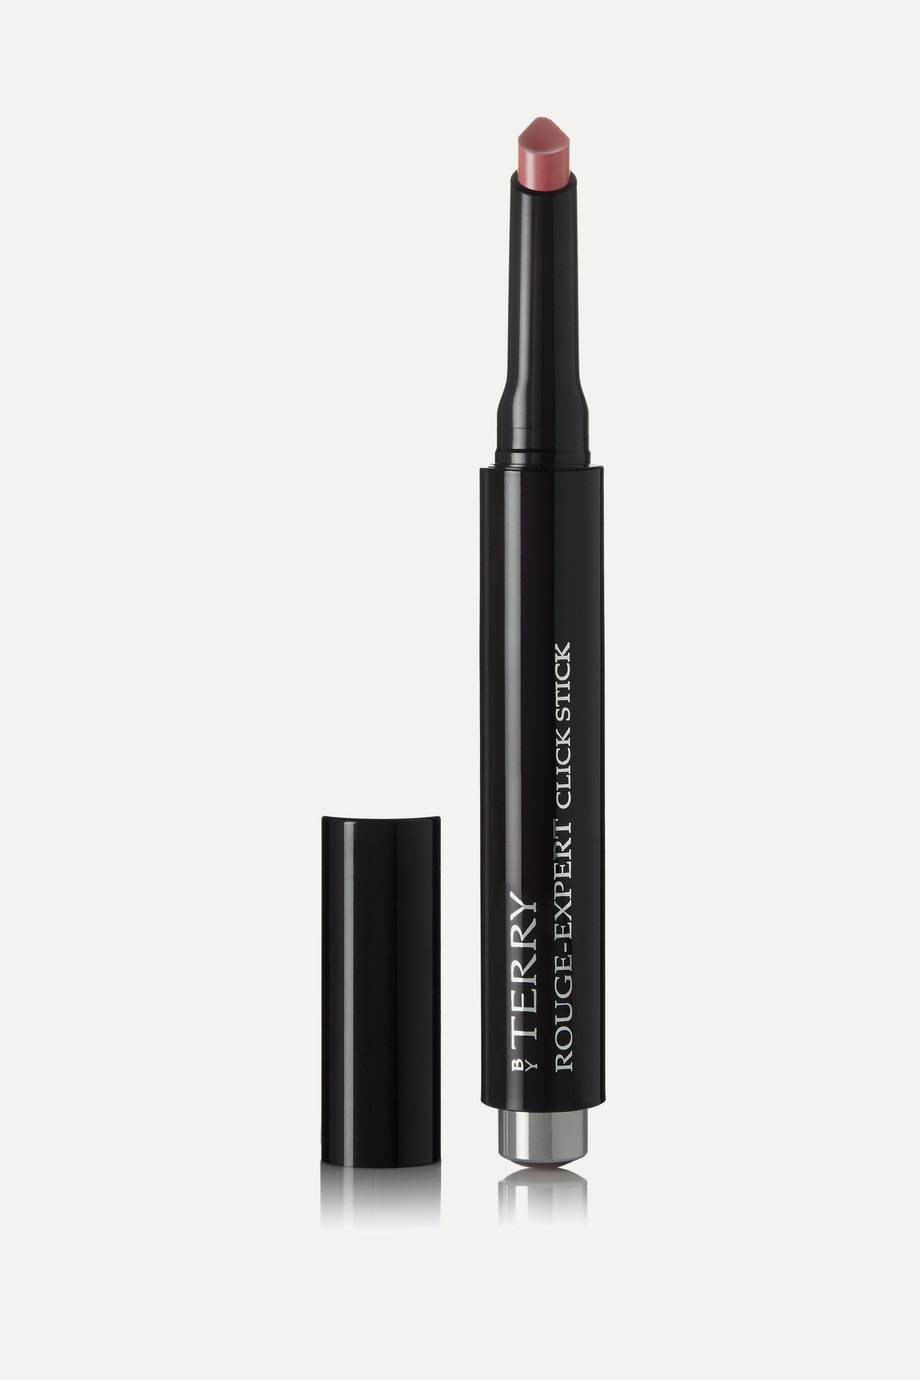 BY TERRY Rouge-Expert Click Stick Hybrid Lipstick - Bloom Nude 2